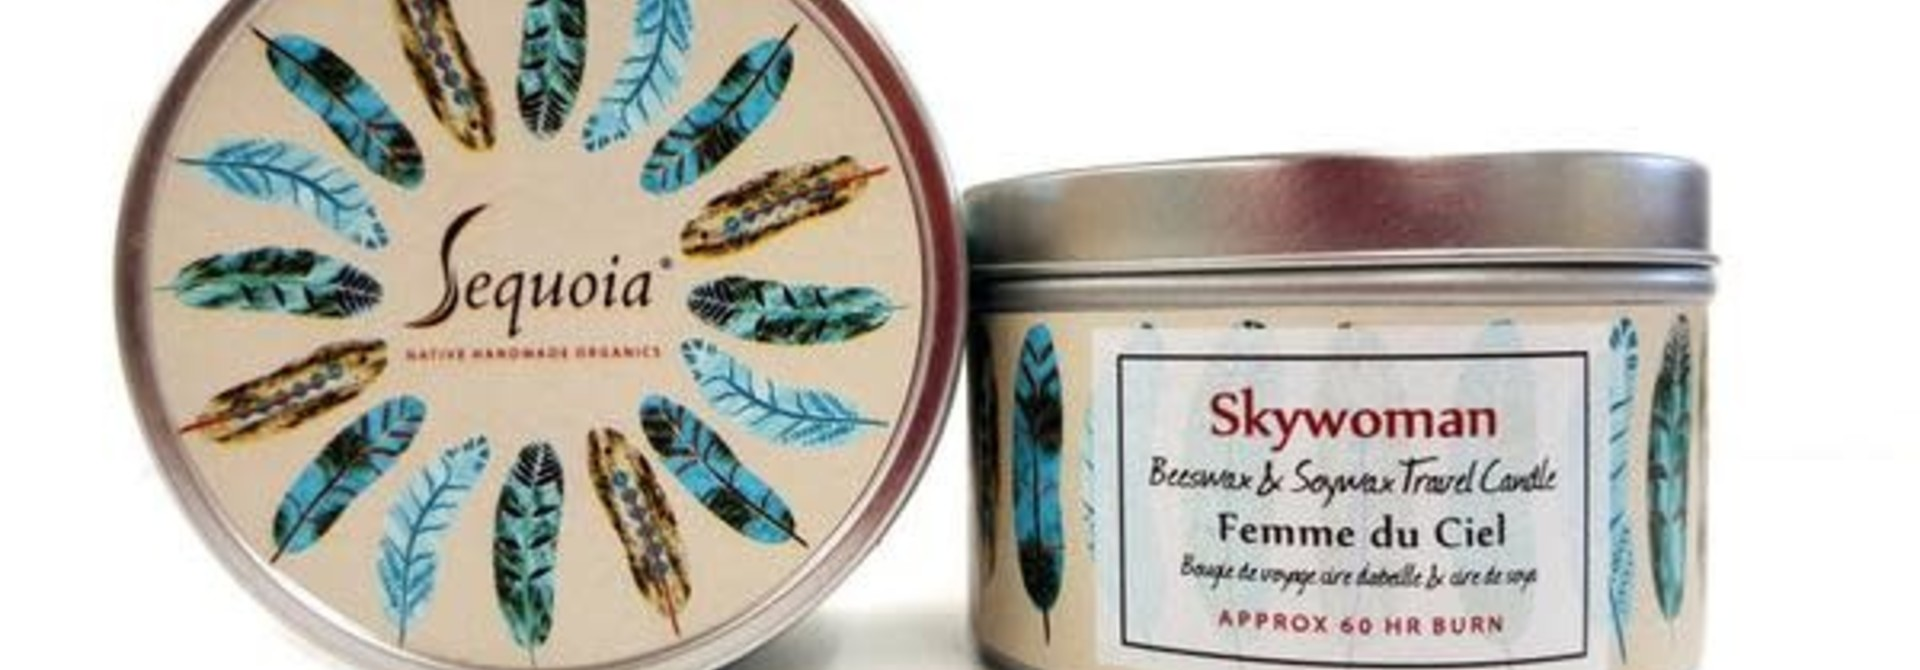 Sequoia 60 Hour Candle - Skywoman